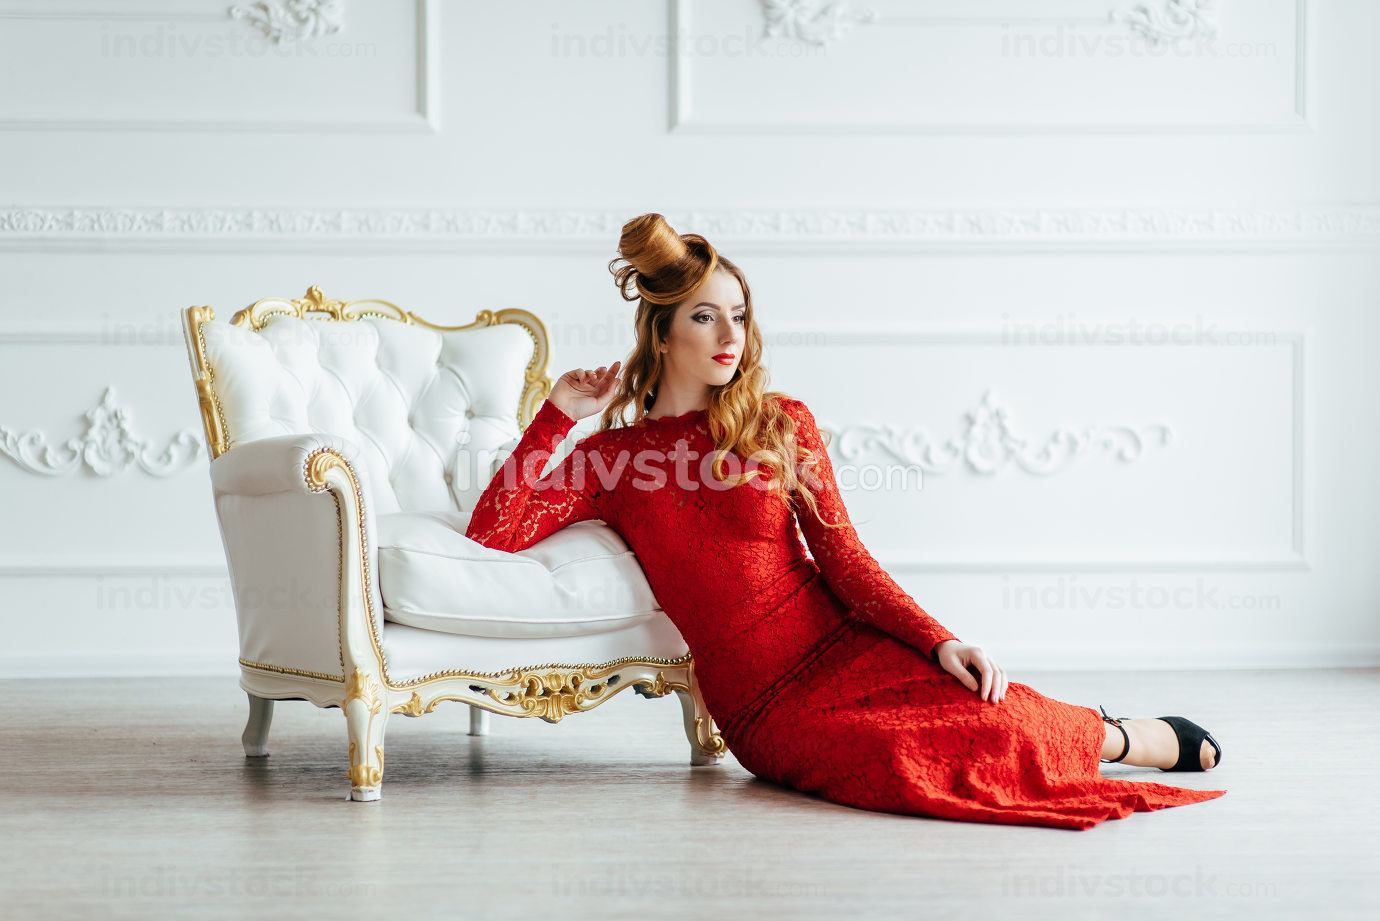 young girl with red hair in a bright red dress in a bright room